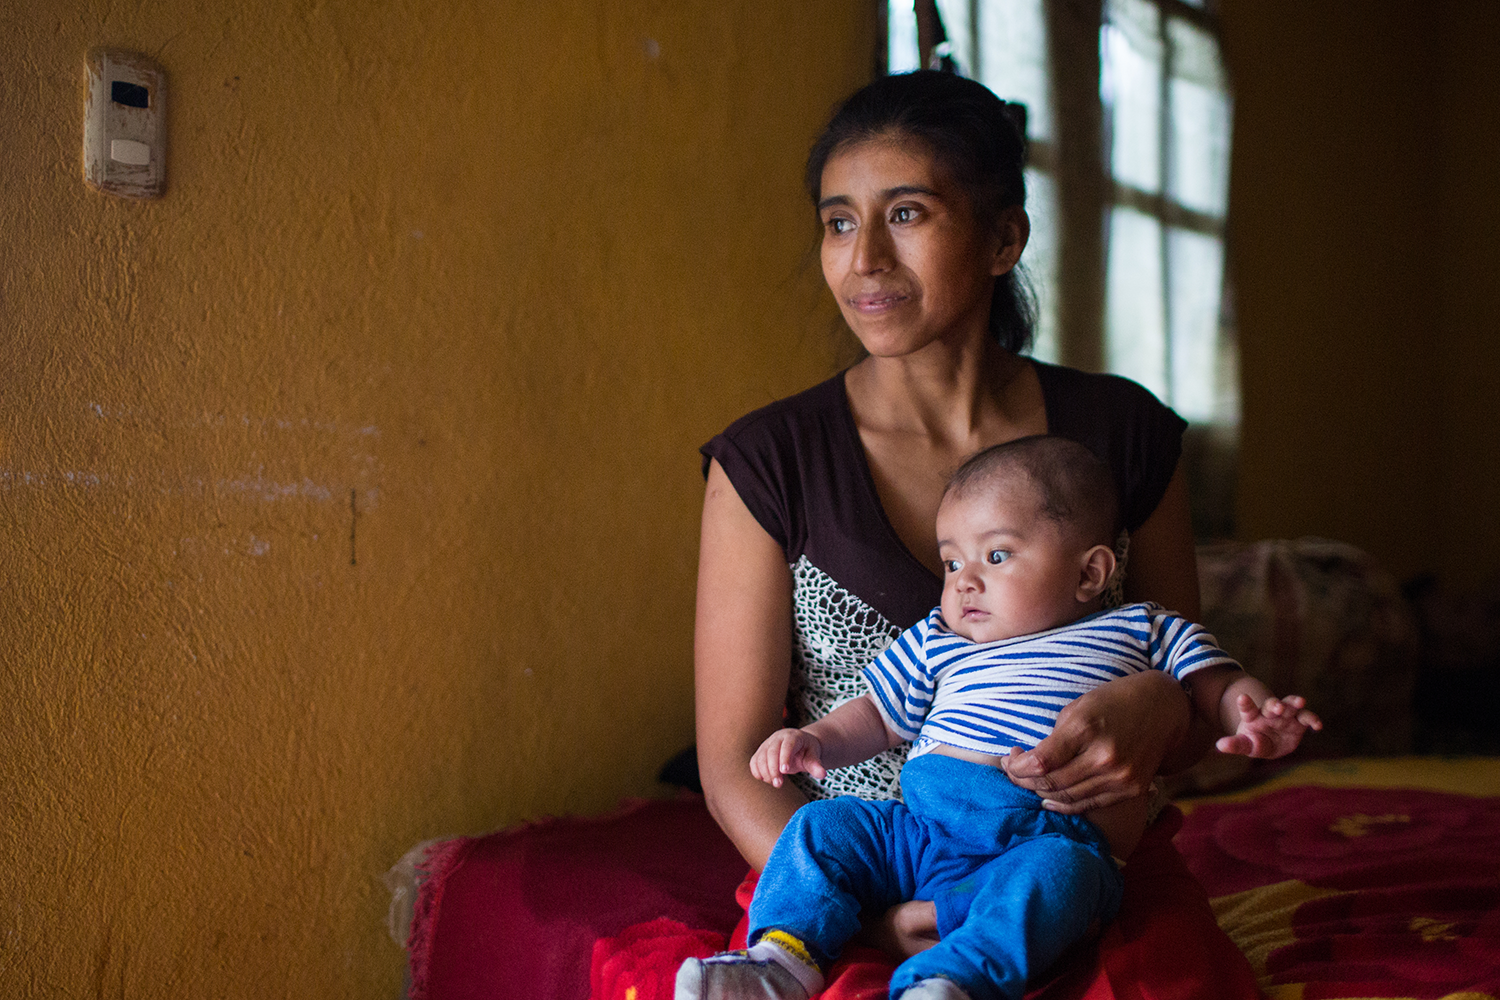 There are and always will be global health challenges to face. But there's boundless hope, too. A mother and child wait for health services at Hospital Nacional Juan José Ortega in Guatemala. Photo by Anna Watts for IntraHealth International.